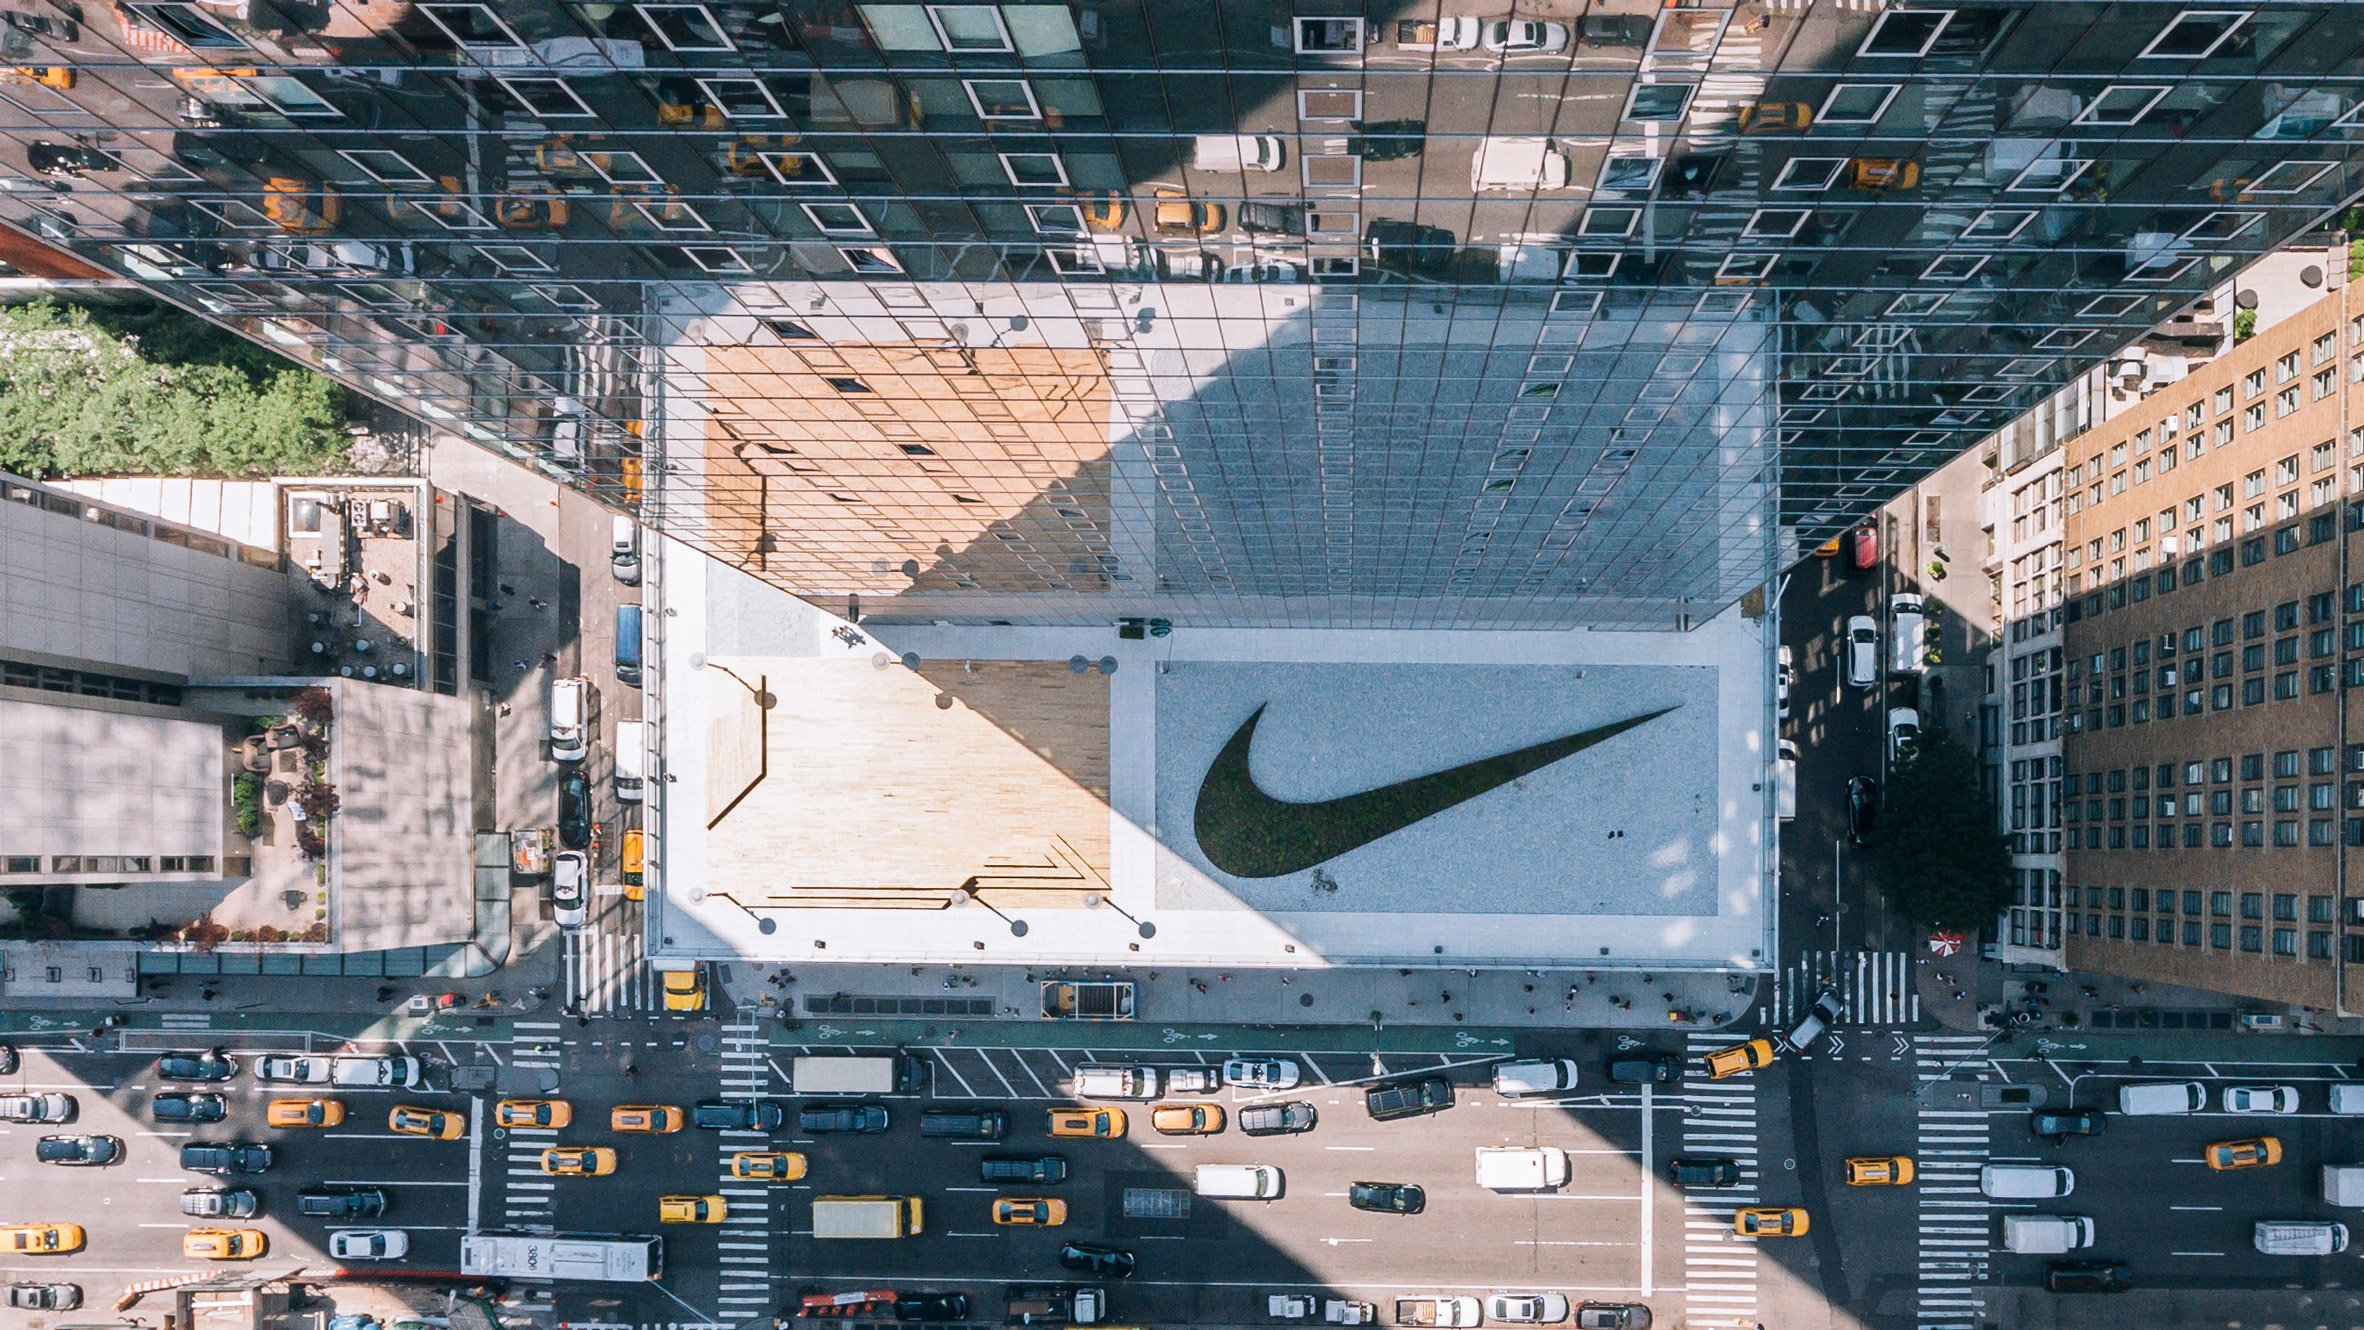 comprar popular seleccione para genuino super barato se compara con Nike unveils New York headquarters topped giant planted swoosh